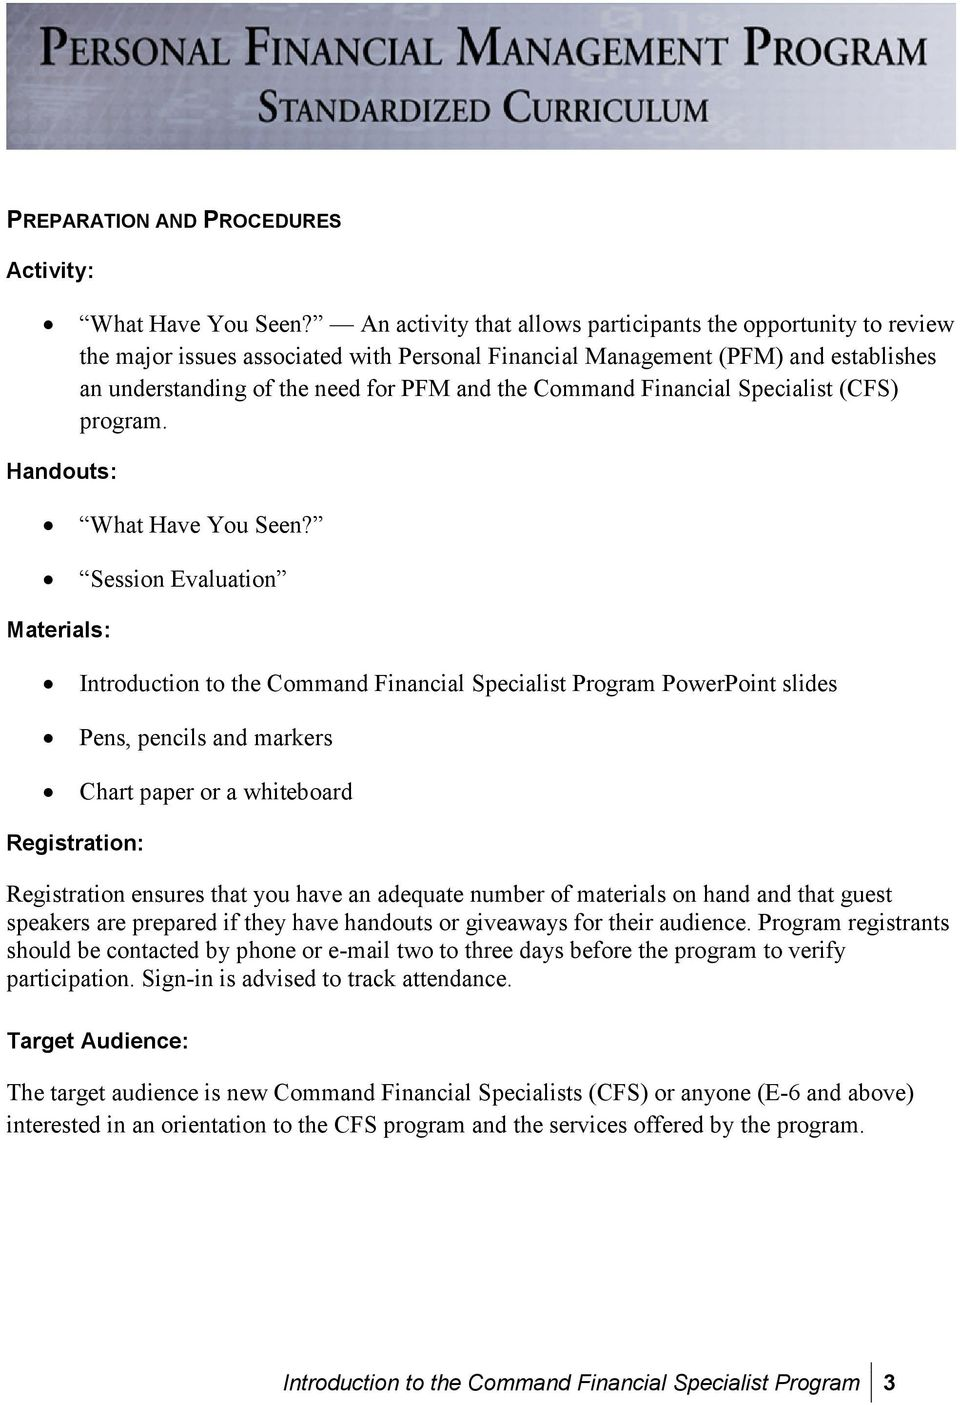 Command Financial Specialist (CFS) program. Handouts: What Have You Seen?